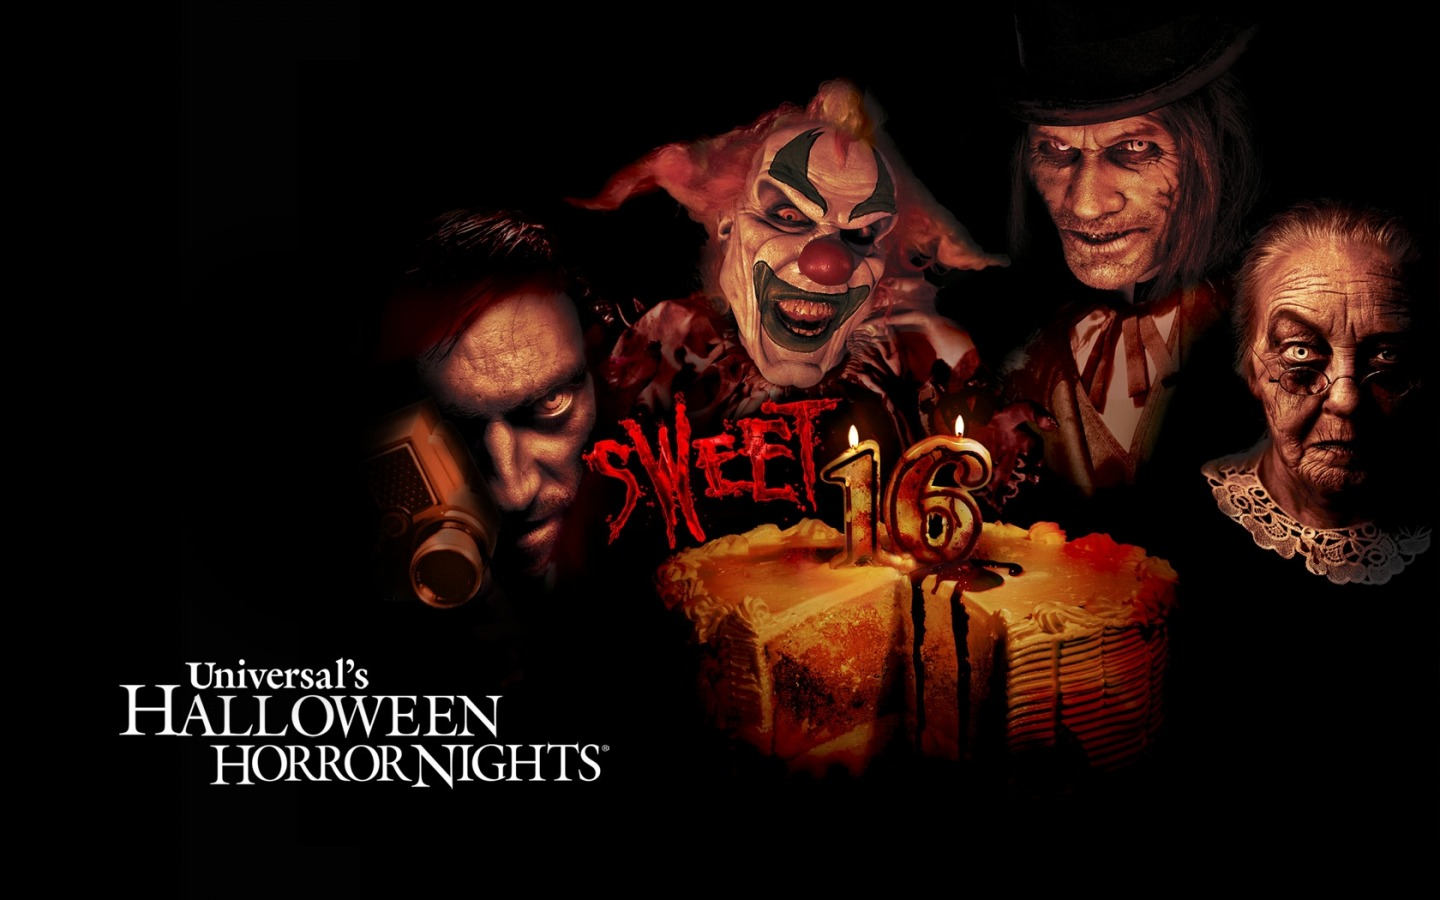 50 happy halloween scary wallpaper background images dp and profile pics for fb whatsapp twitter